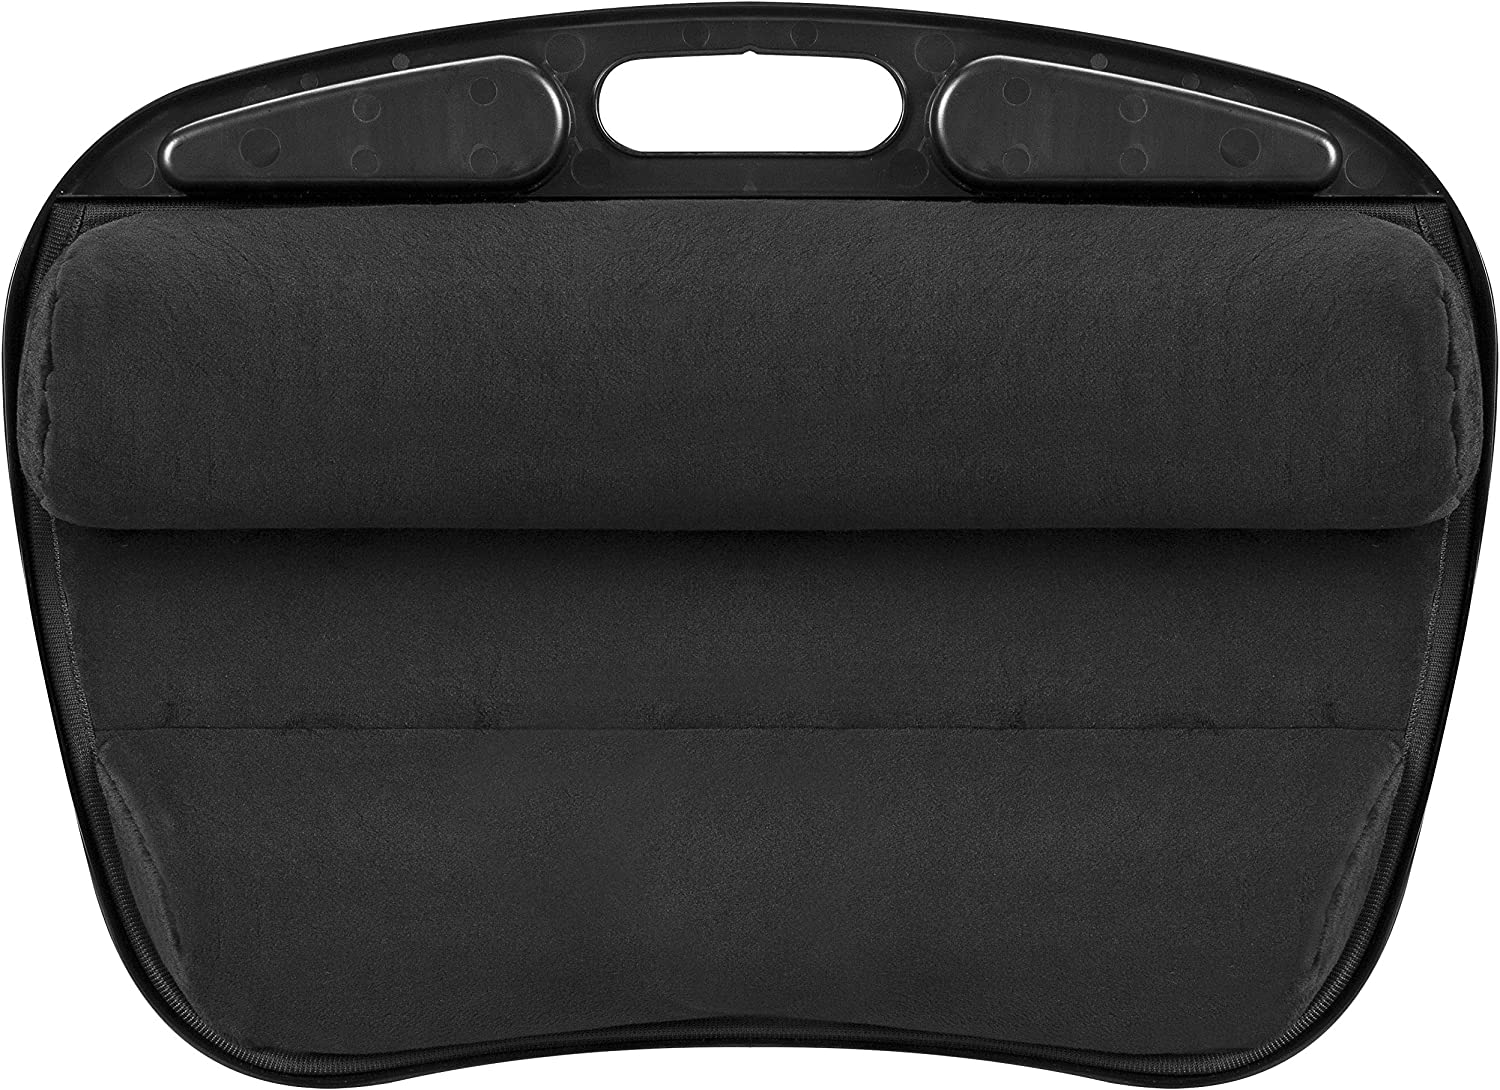 LapGear Mydesk Lap Desk with Device Ledge and Phone Holder - Black - Fits Up to 15.6 Inch Laptops - Style No. 44448: Computers & Accessories